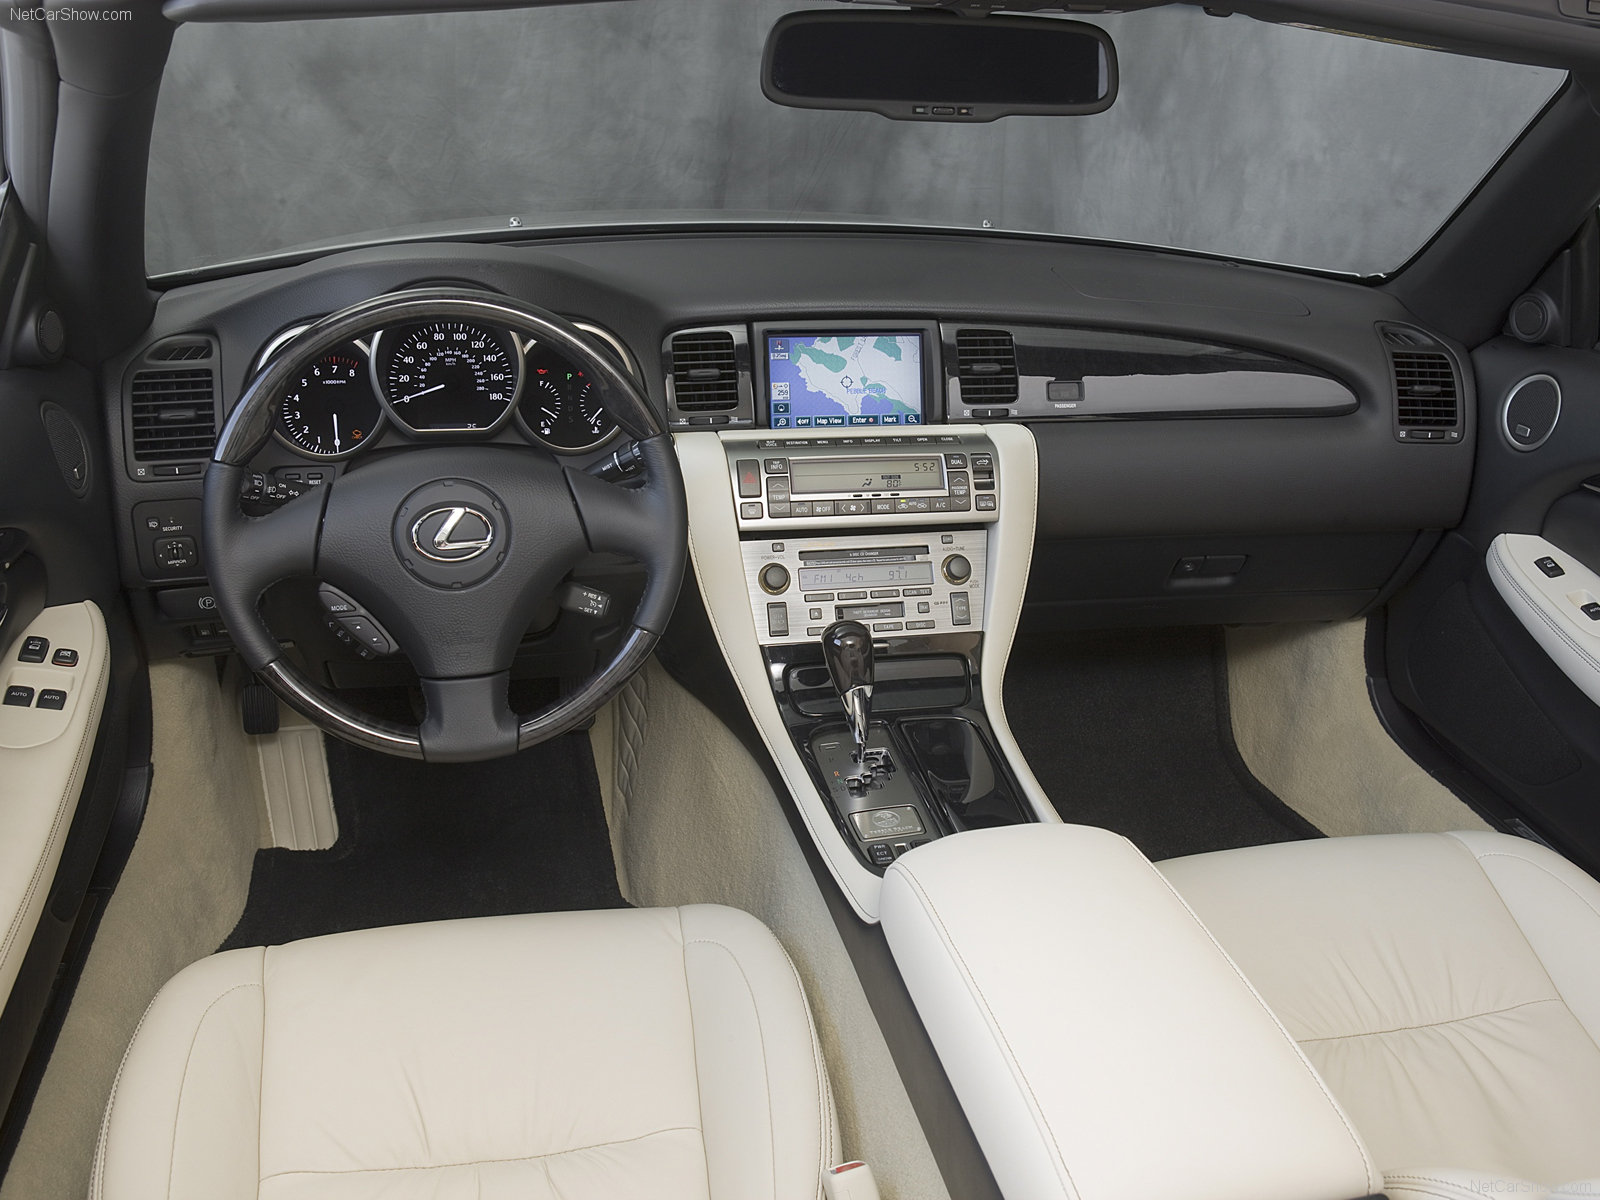 Lexus Sc430 Manual Transmission